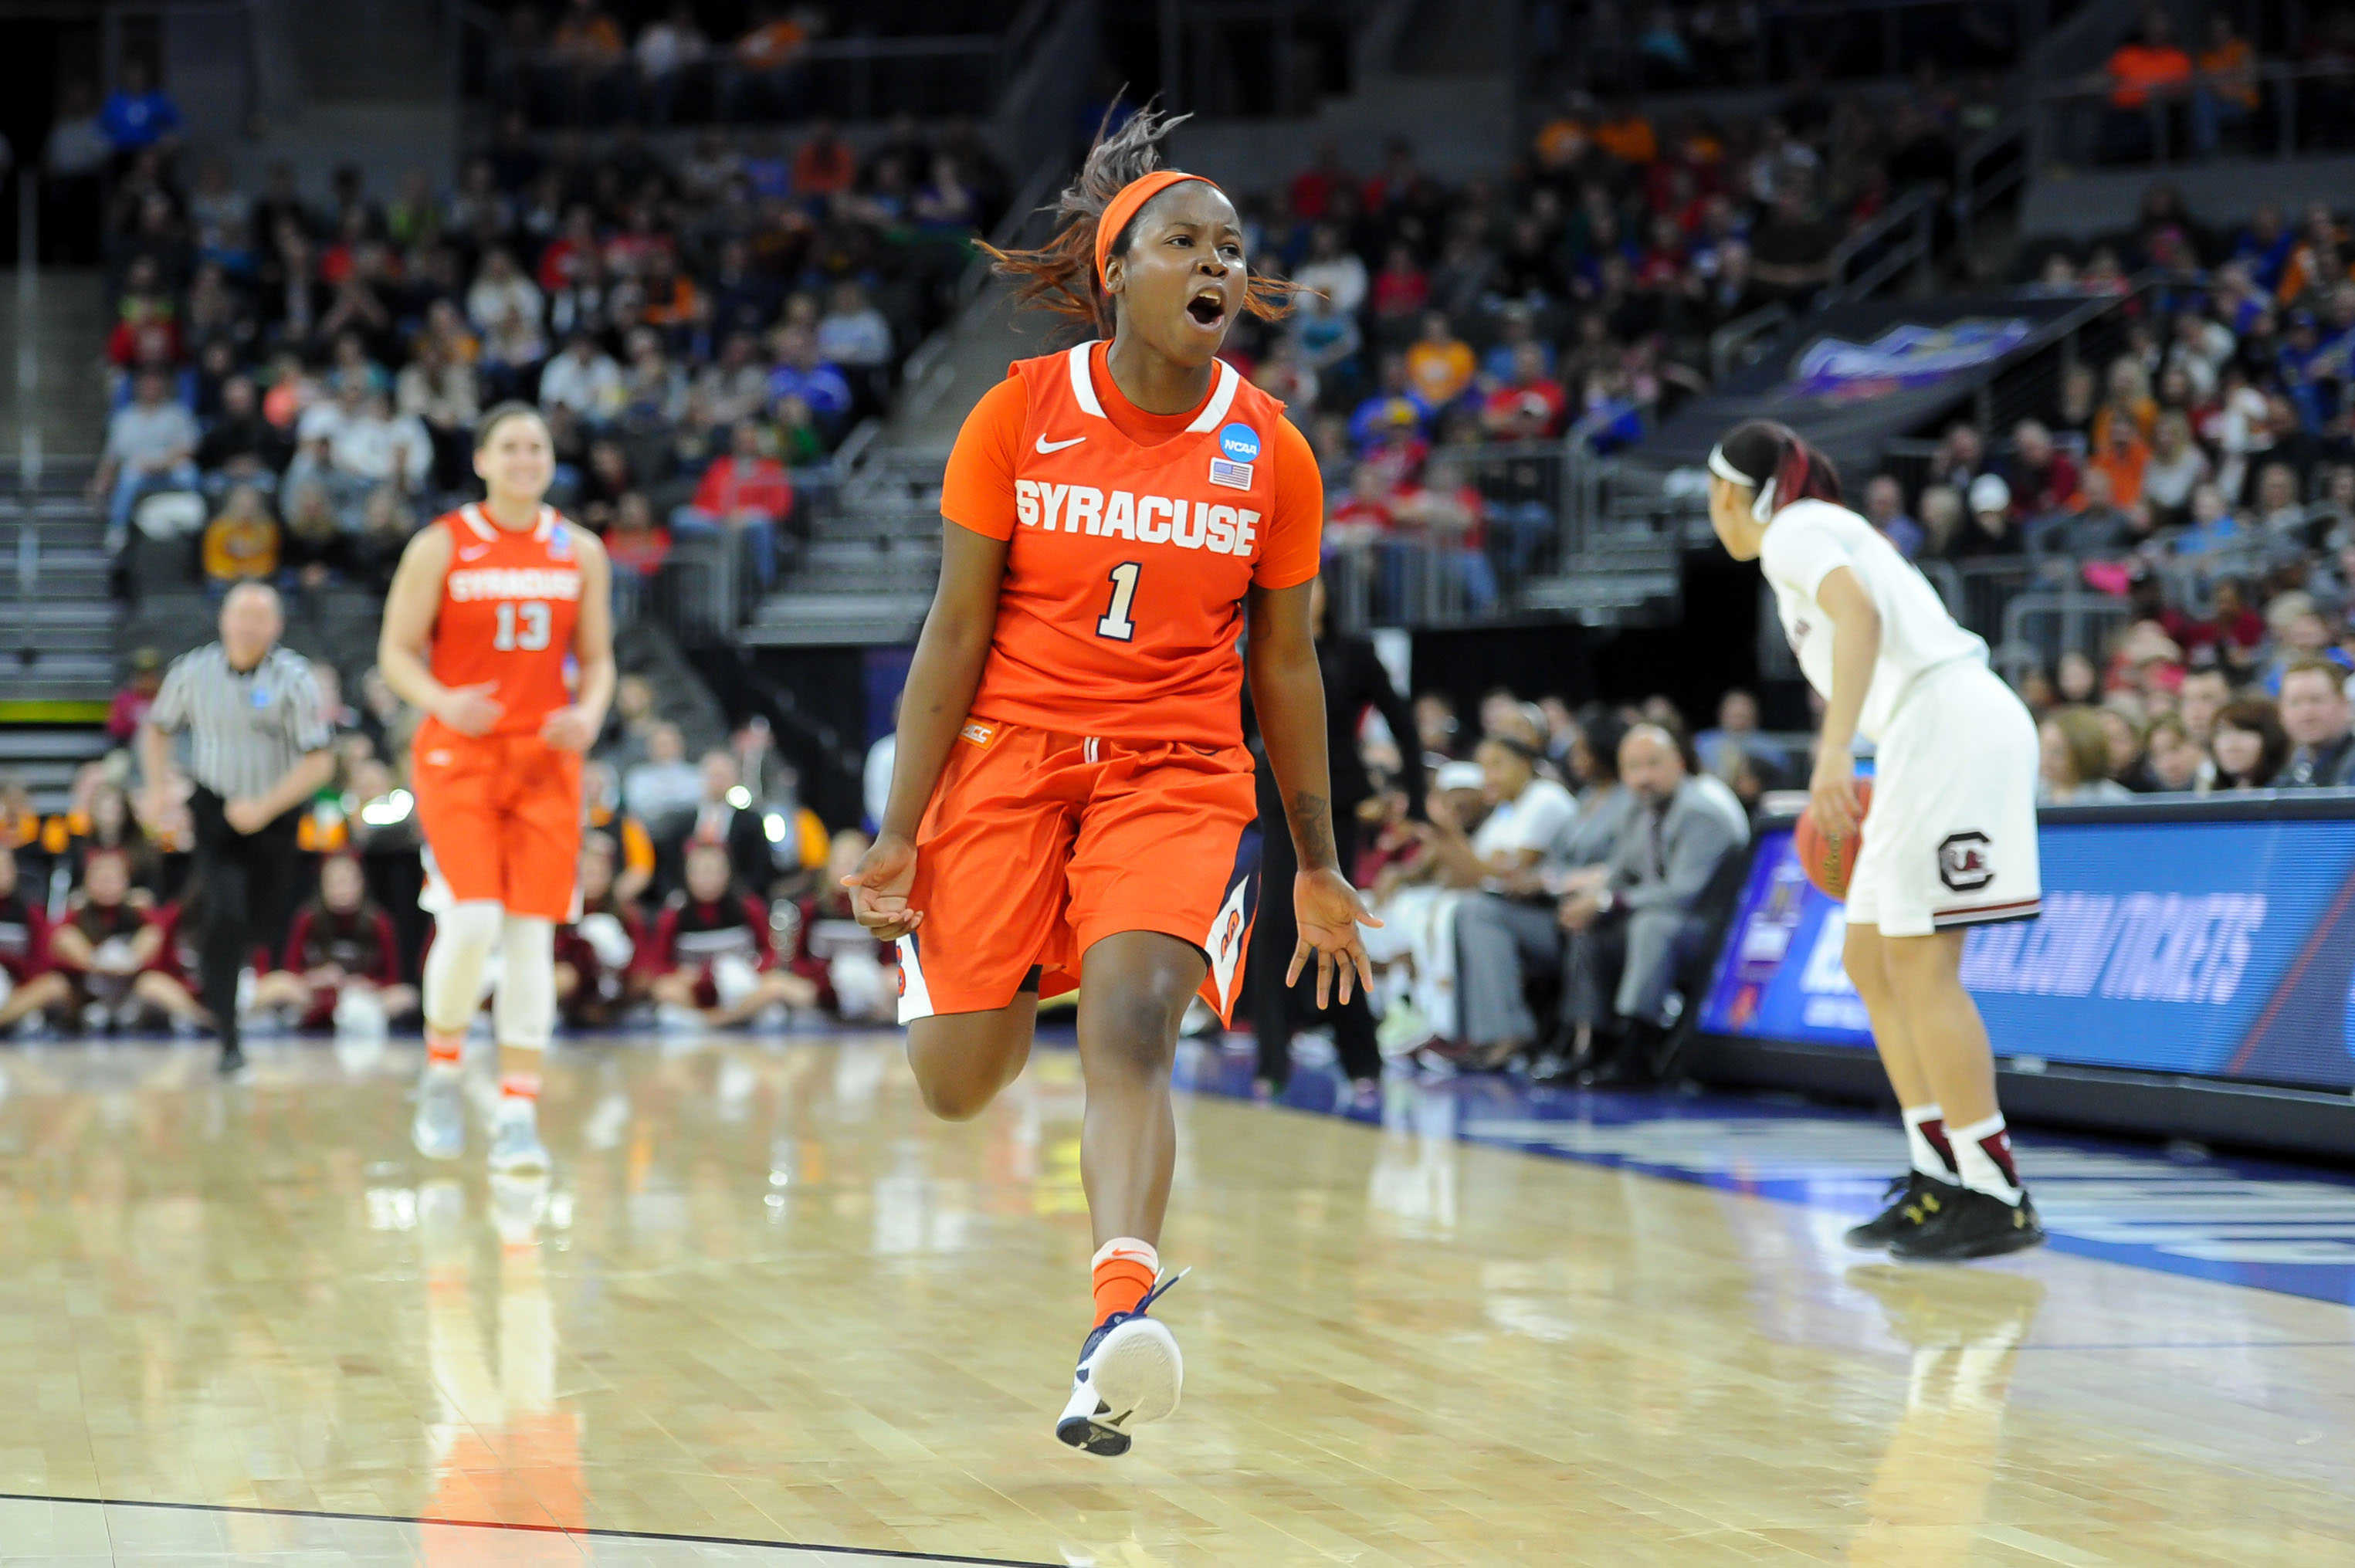 SU women's basketball wins NCAA opener, faces UCONN Monday